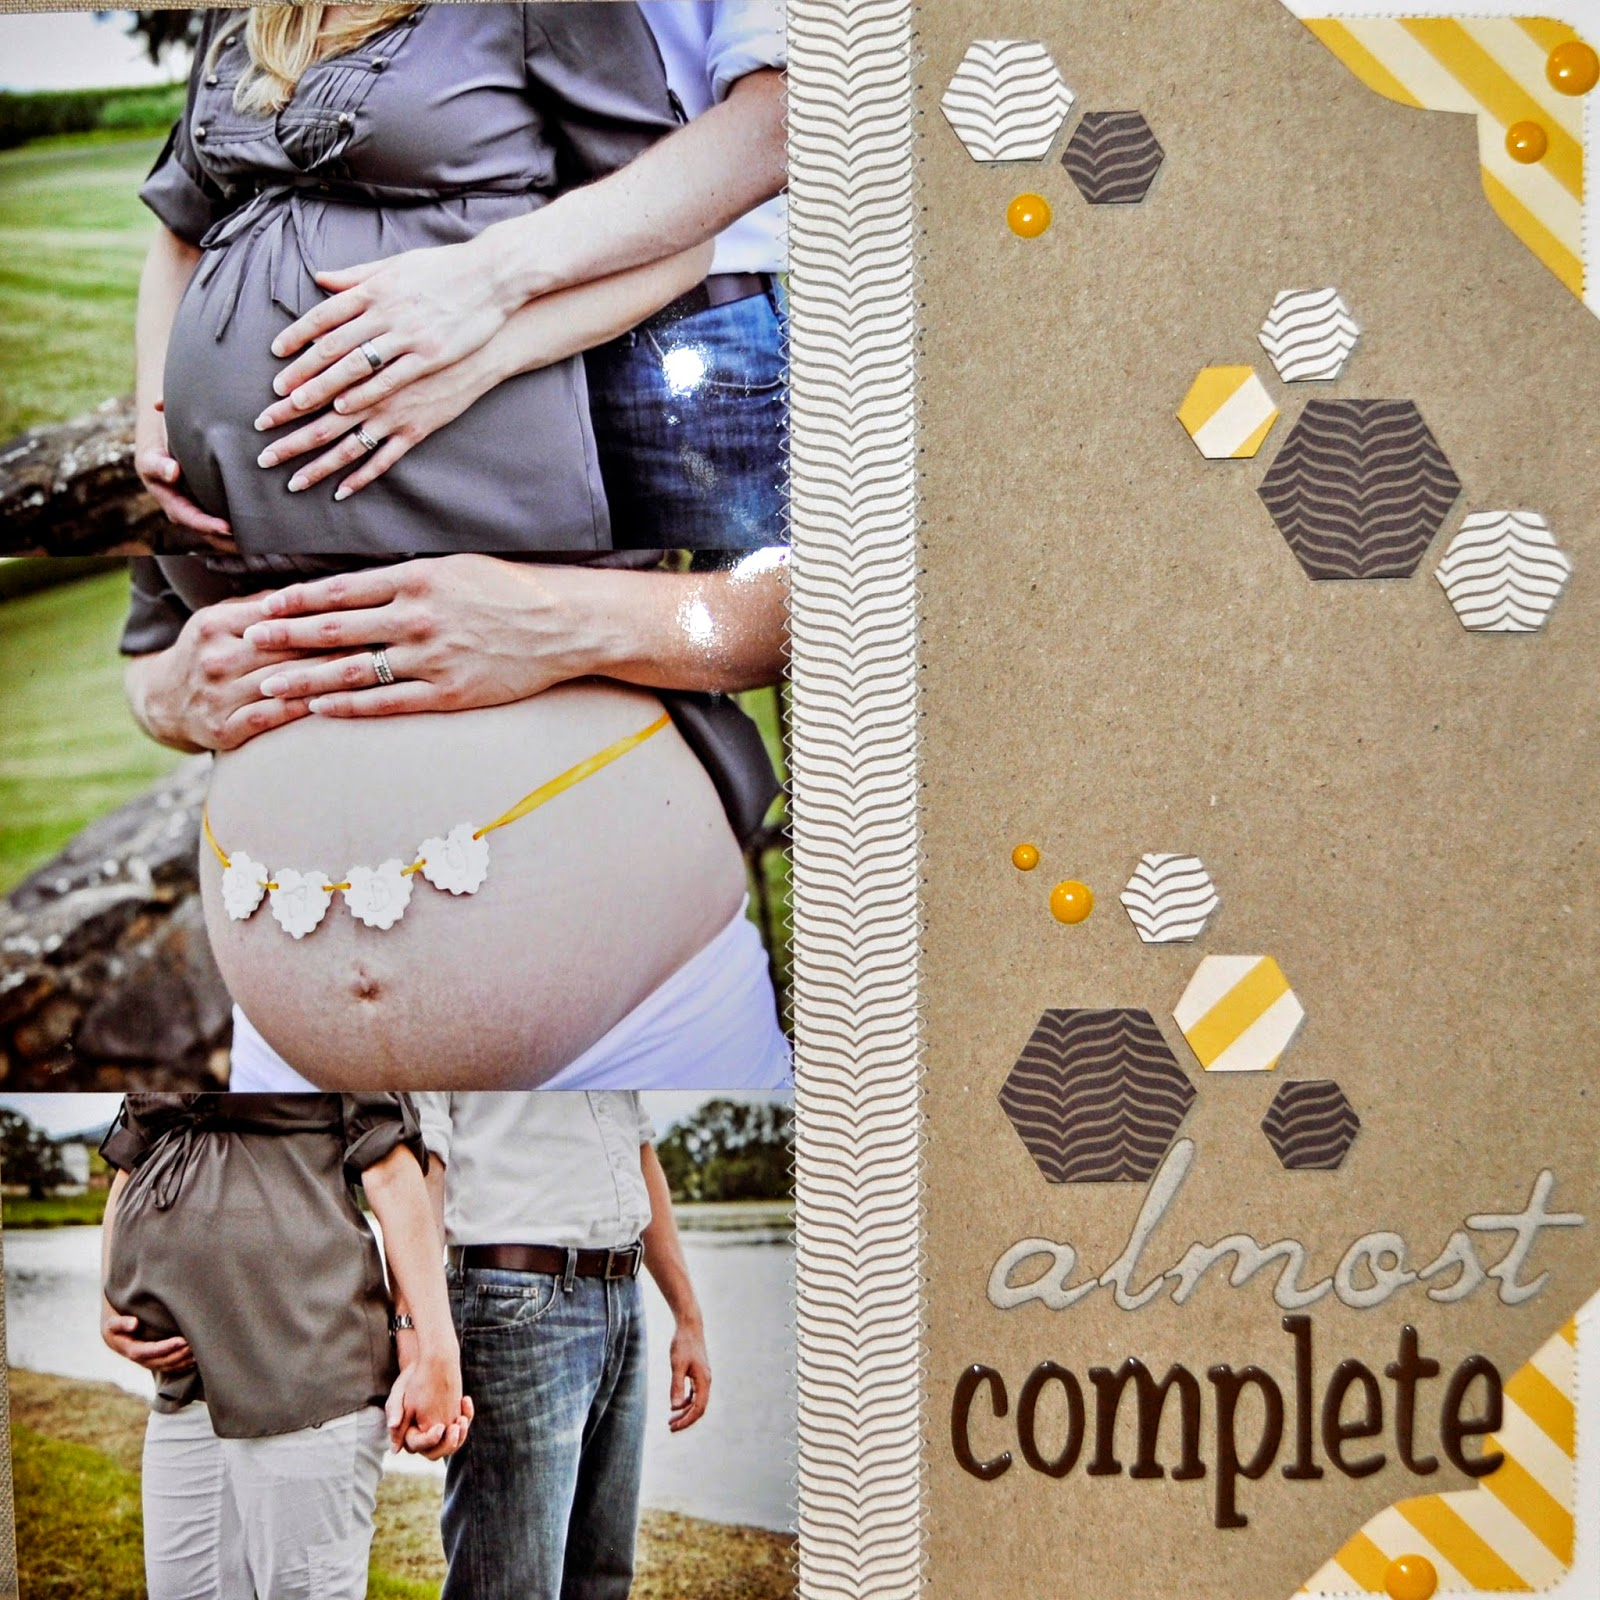 12x12 scrapbook page example inspiration unisex surprise baby pregnancy pregnant expecting boy girl due date banner bunting maternity nursery belly bump kraft machine stitching white dark brown chevron hexagon studio calico almost complete enamel dots